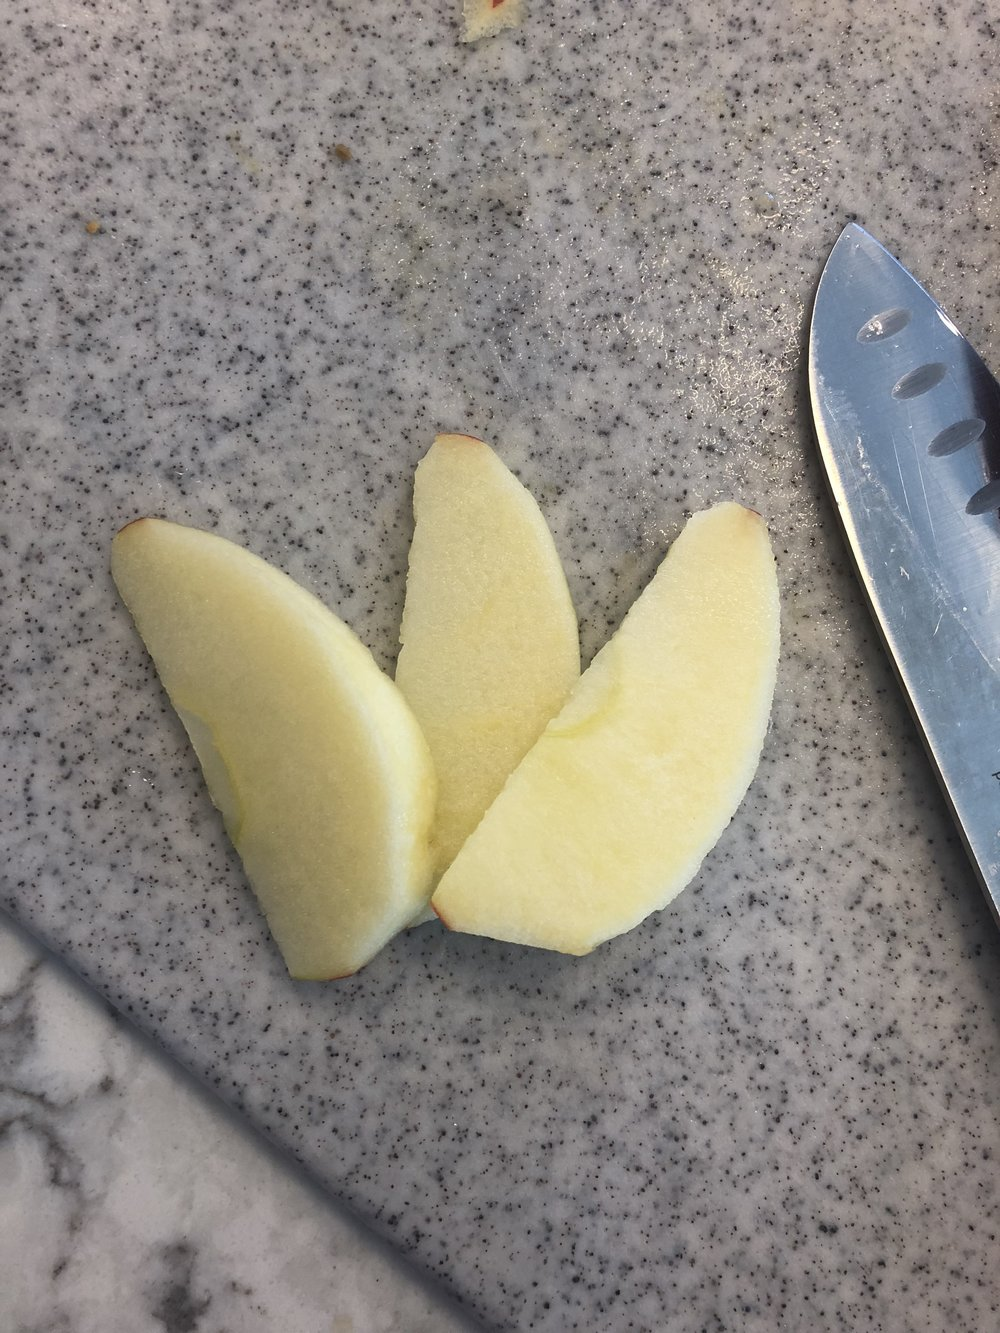 I will then take the large segments and cut them into thinner slices